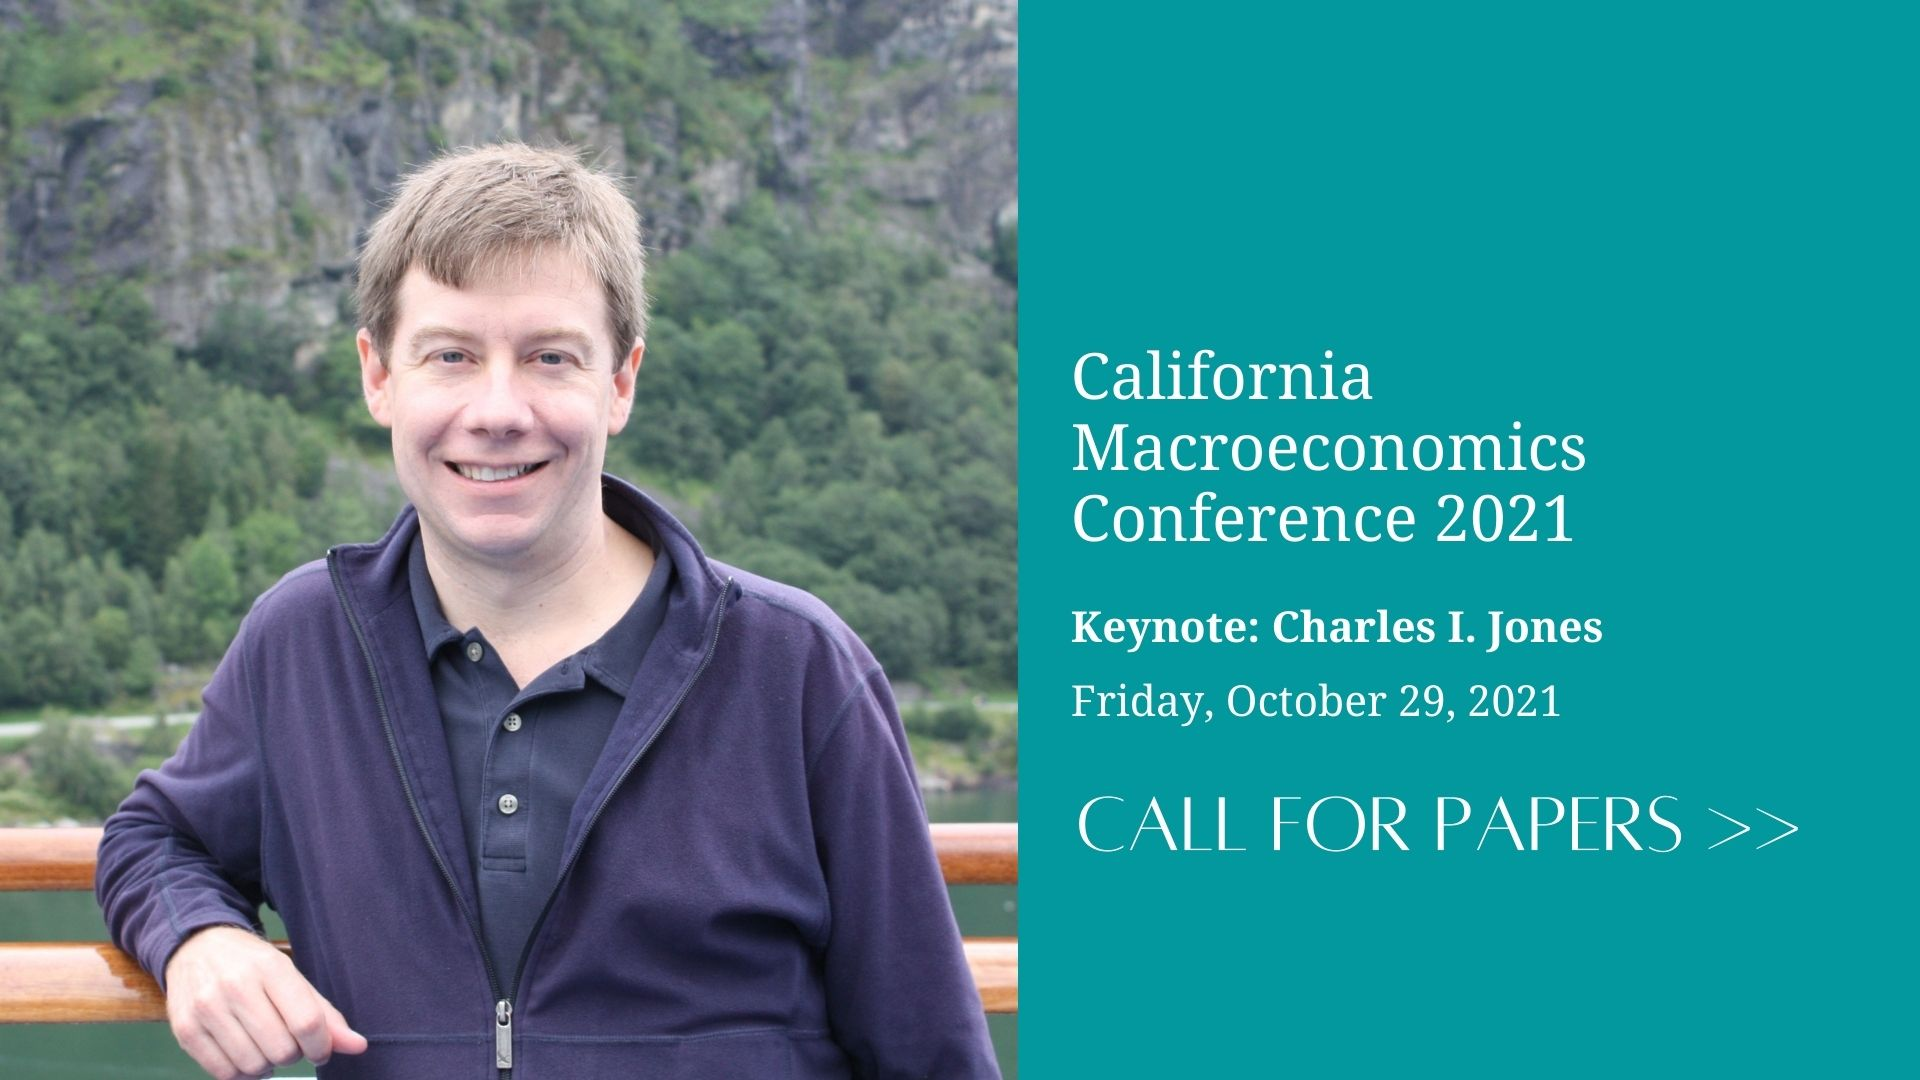 California Macroeconomics Conference